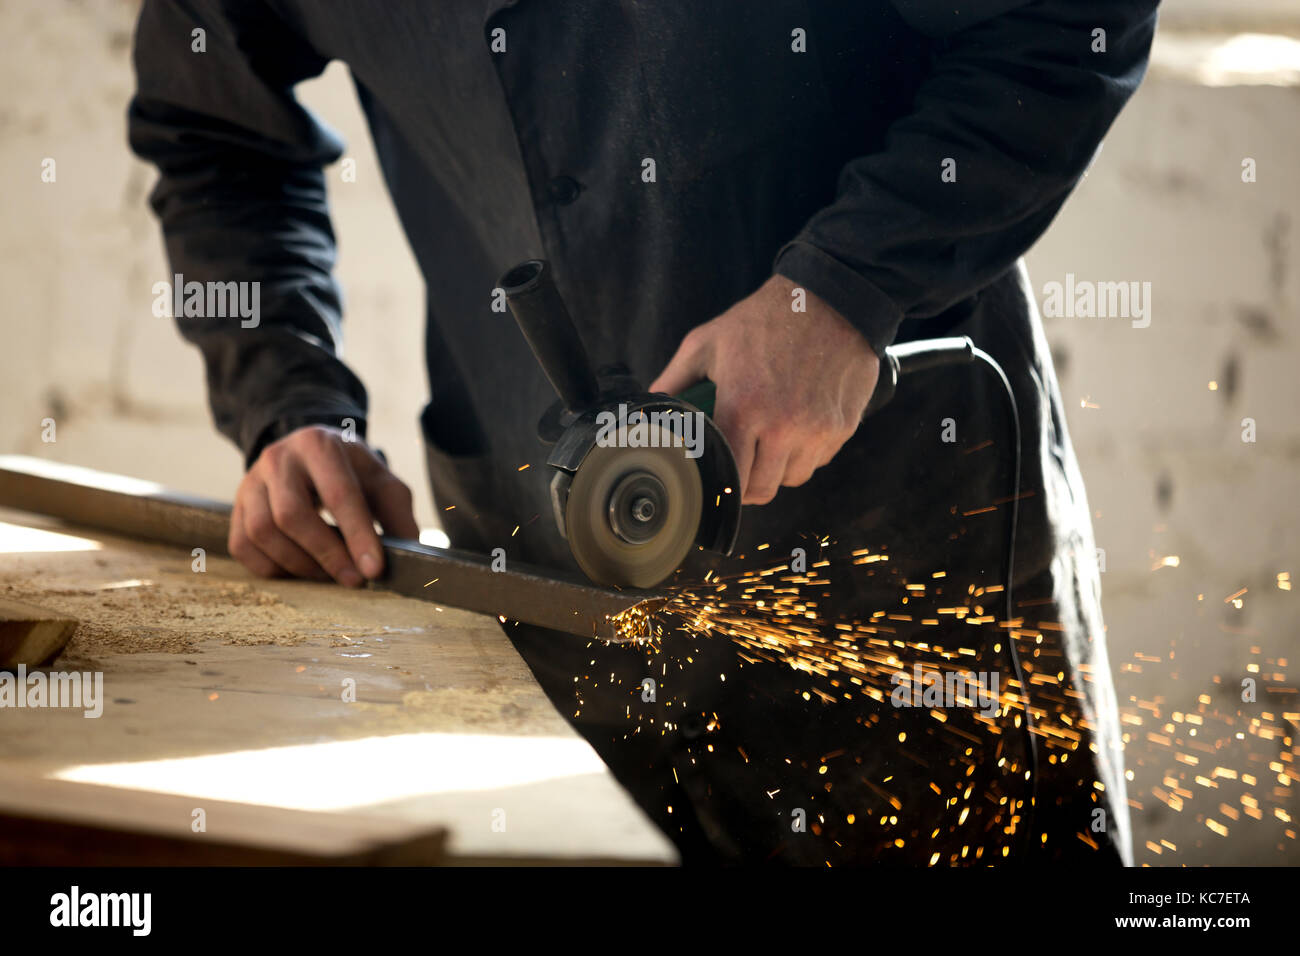 Craftsman working with electric tool in workshop - Stock Image